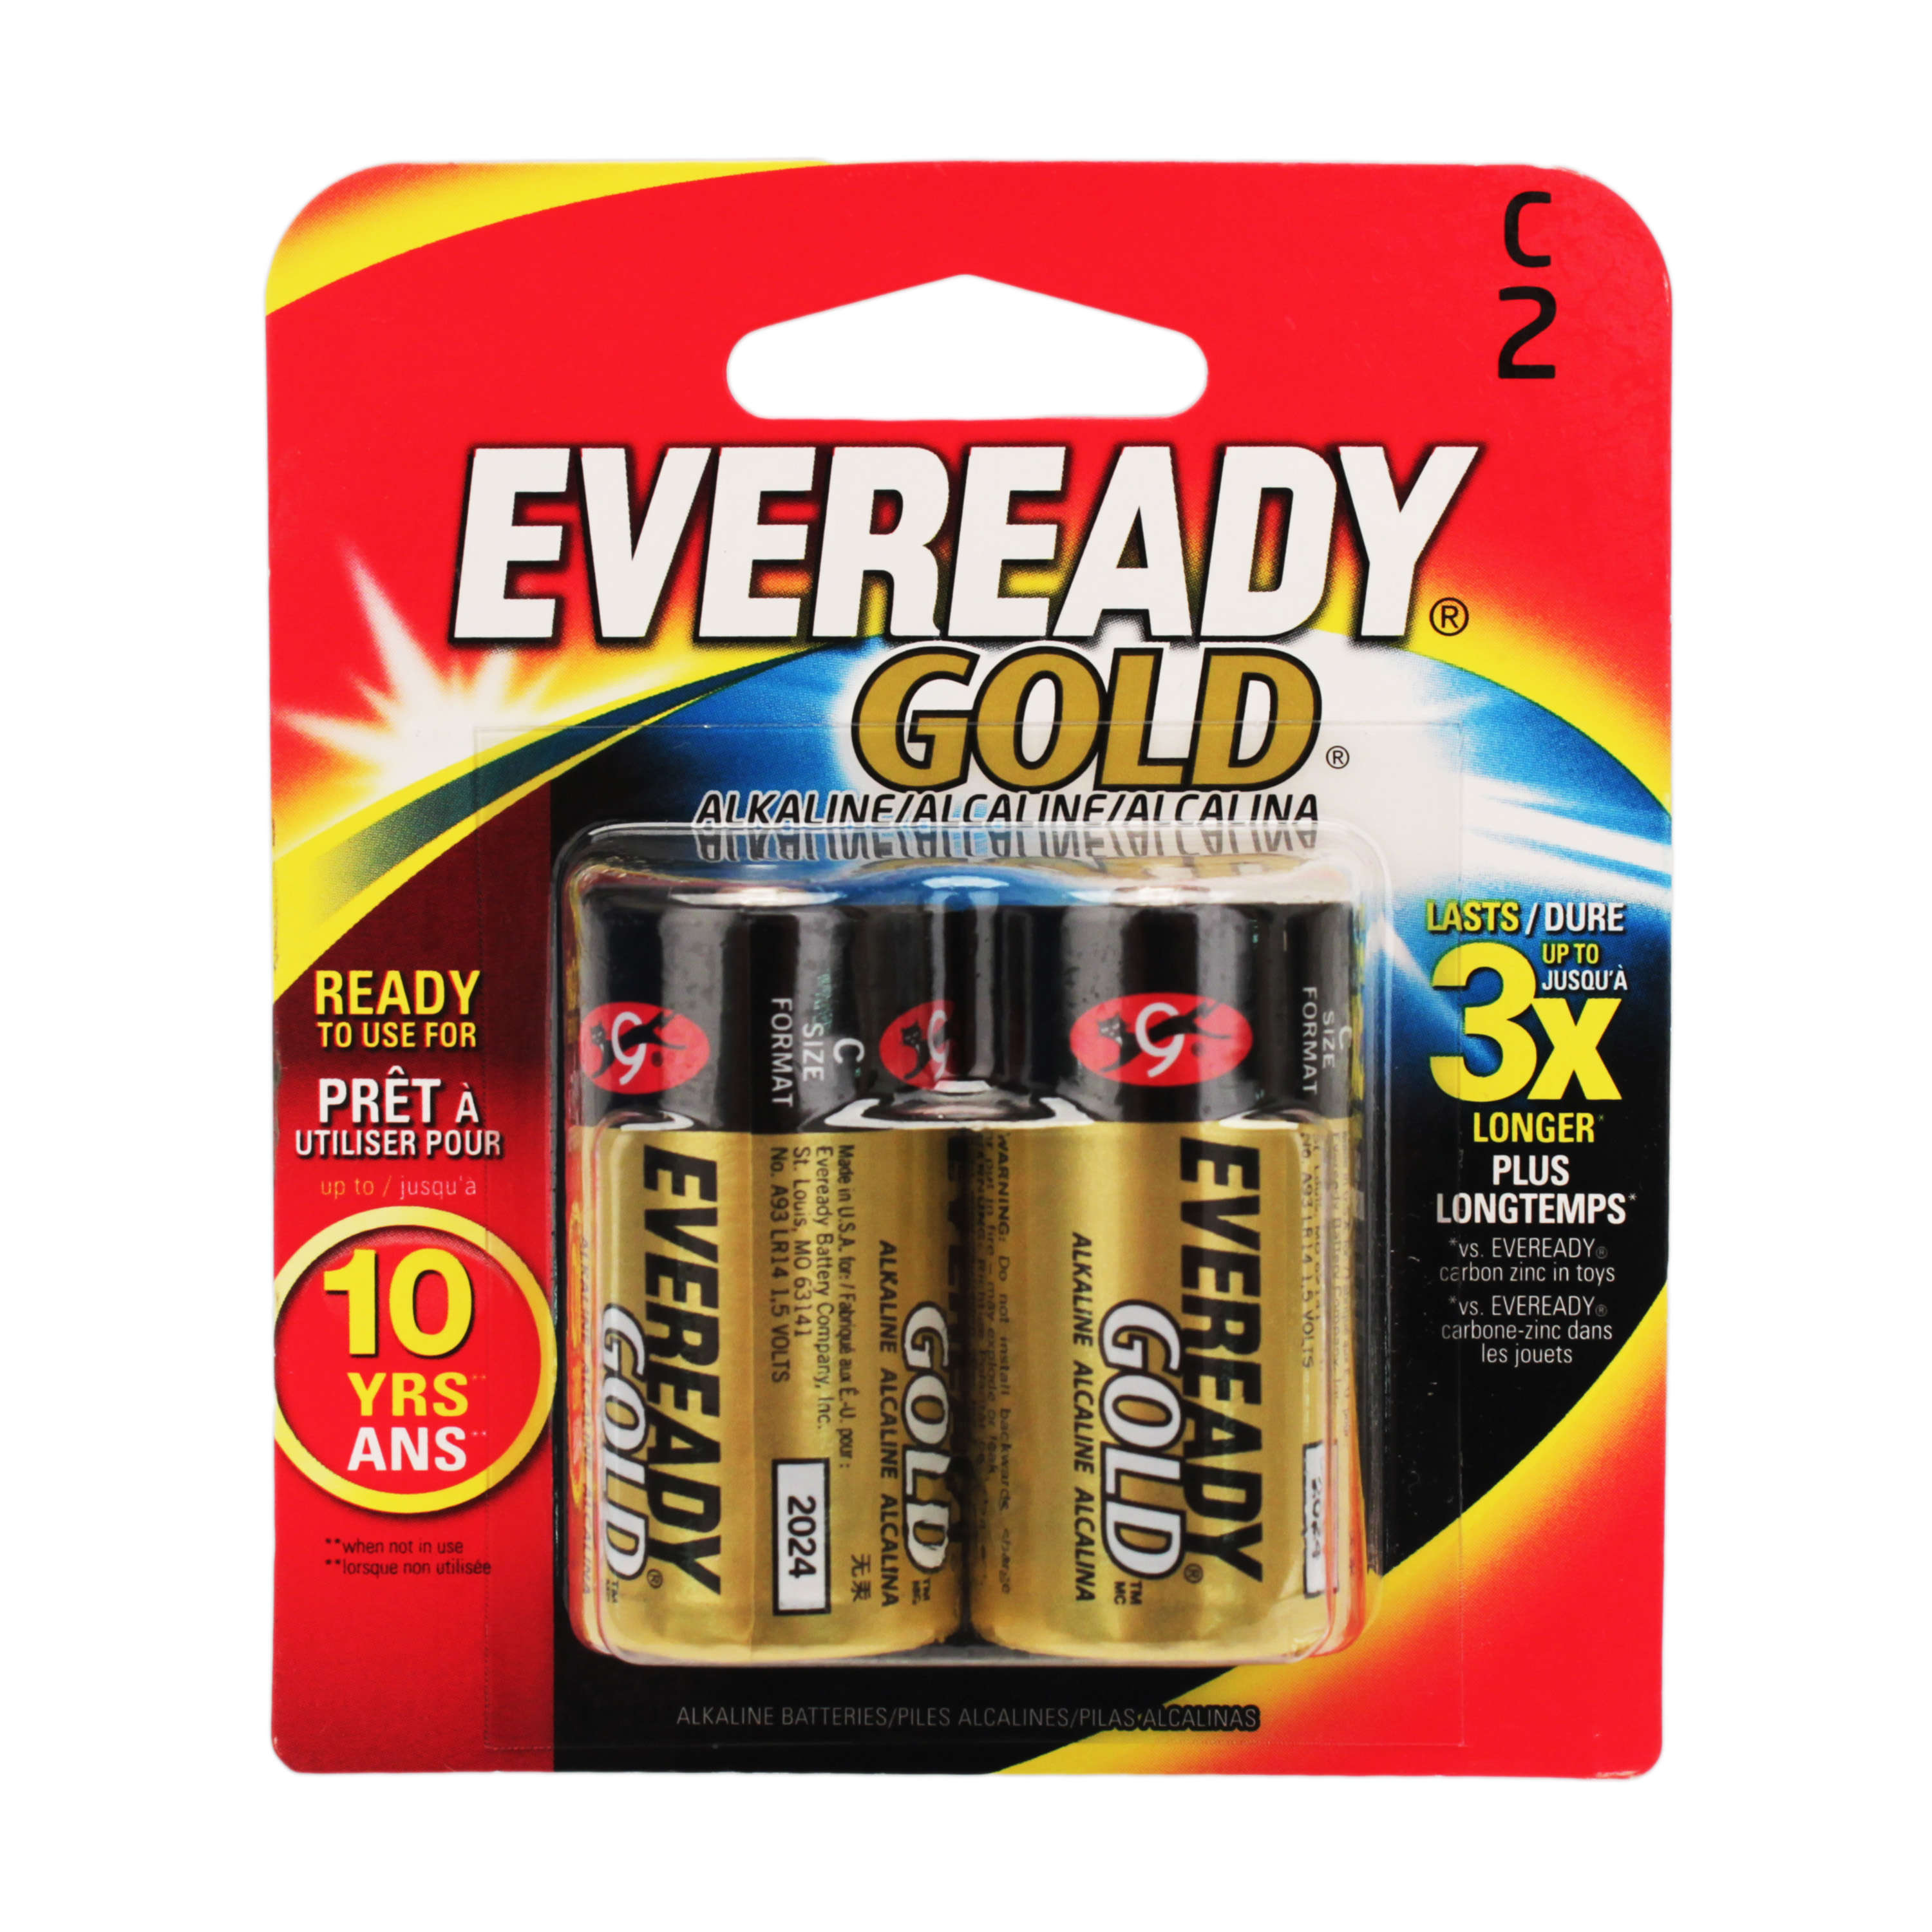 EVEREADY GOLD C Batteries, 2 pk